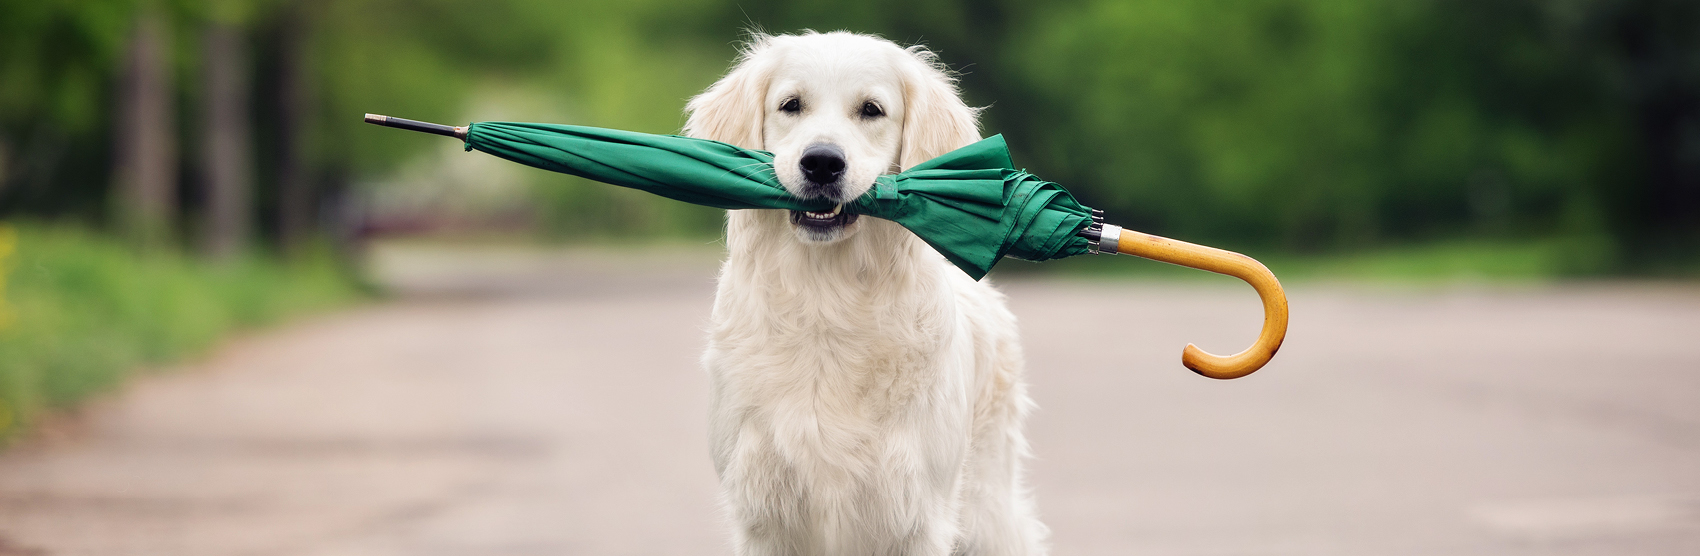 White dog holding a green umbrella